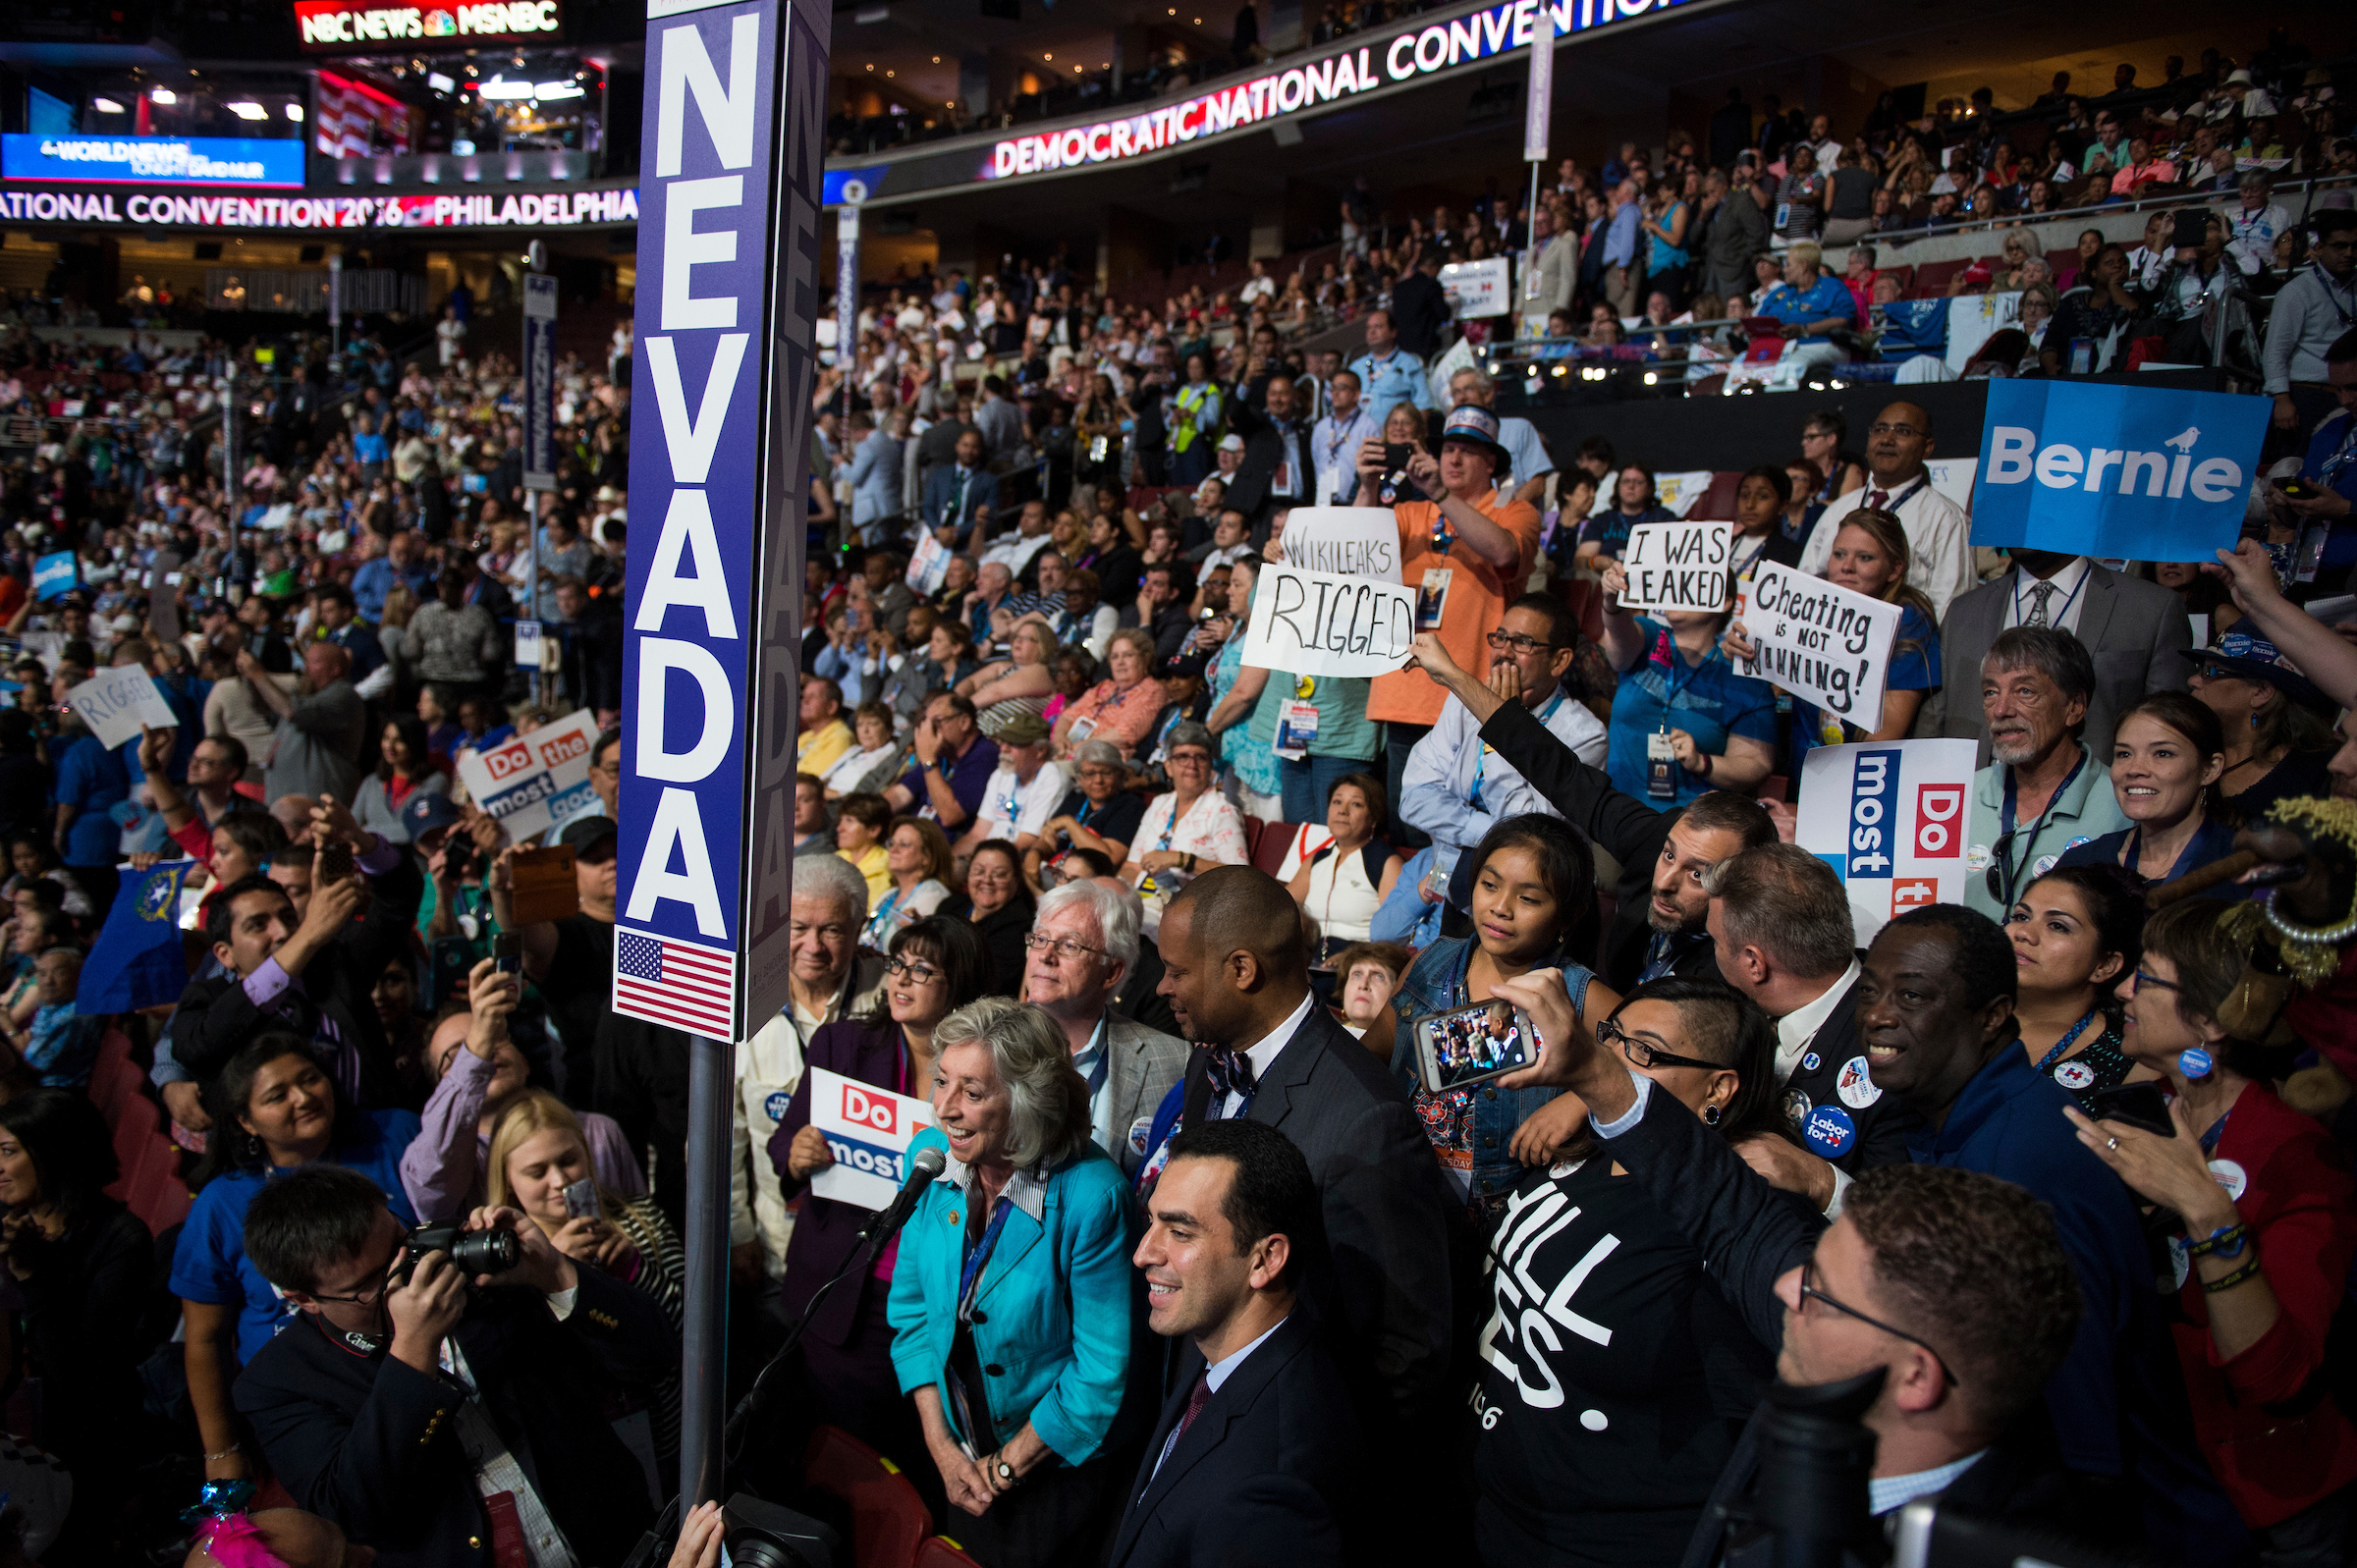 UNITED STATES - JULY 26: Rep. Dina Titus, D-Nev., center, standing next to Congressional candidate Ruben Kihuen, speaks for the Nevada delegation during the roll call vote for the nomination for President at the Democratic National Convention in Philadelphia on Tuesday, July 26, 2016. (Photo By Bill Clark/CQ Roll Call)